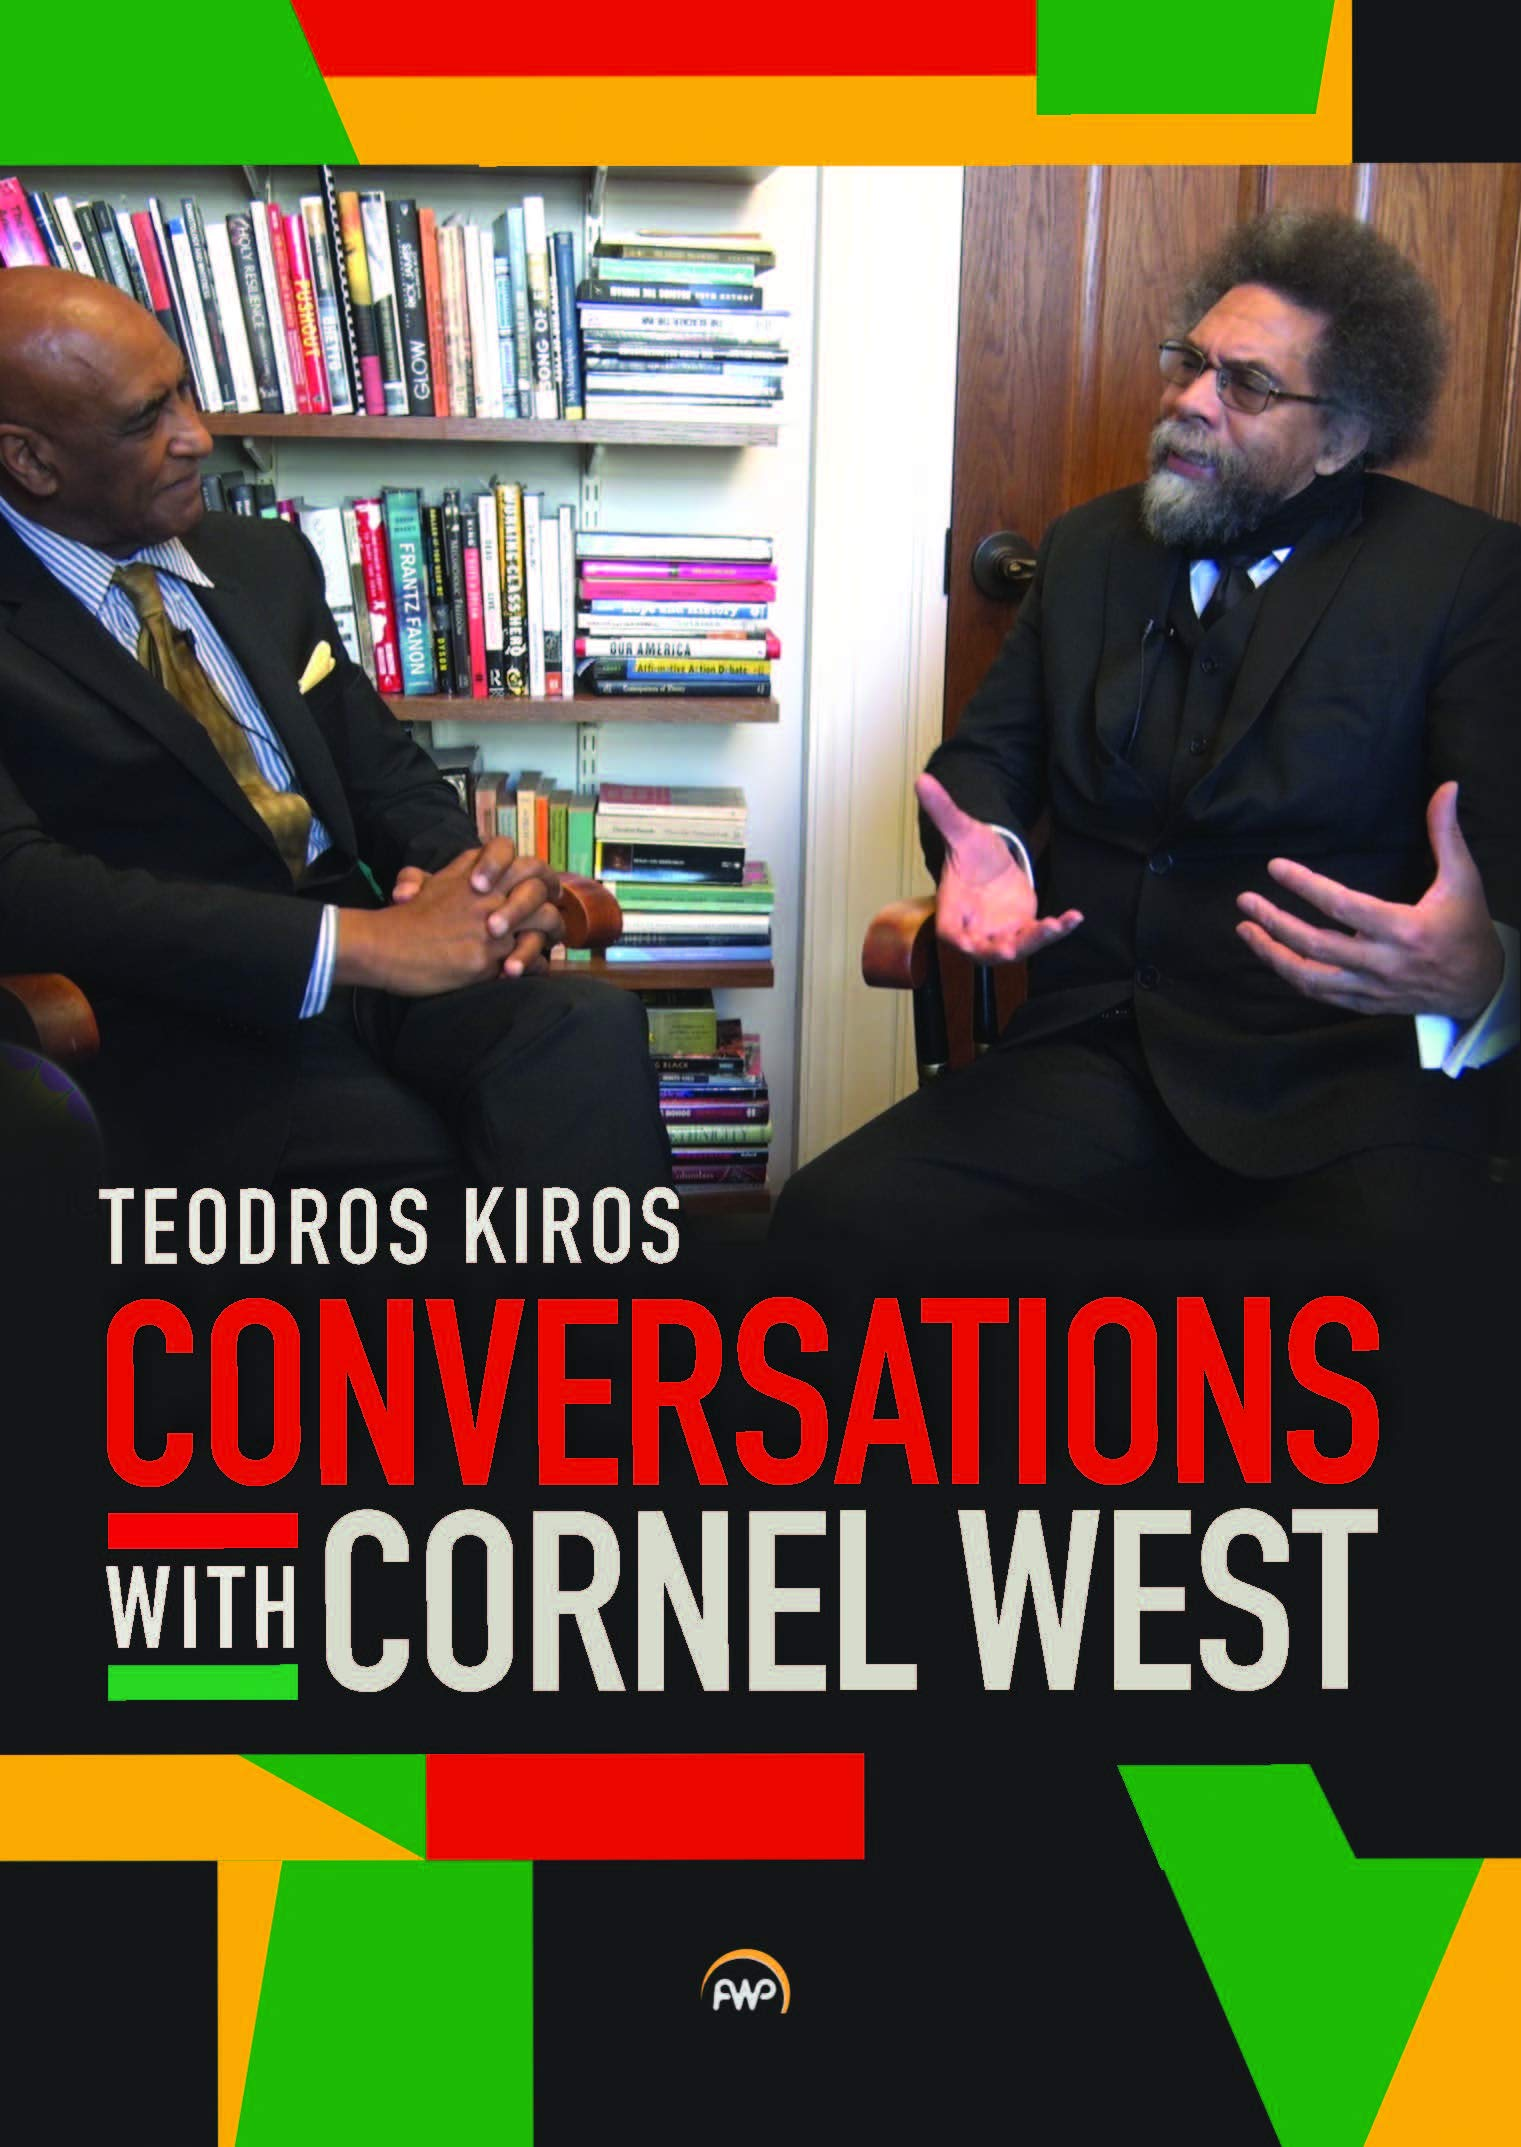 Conversations with Cornel West